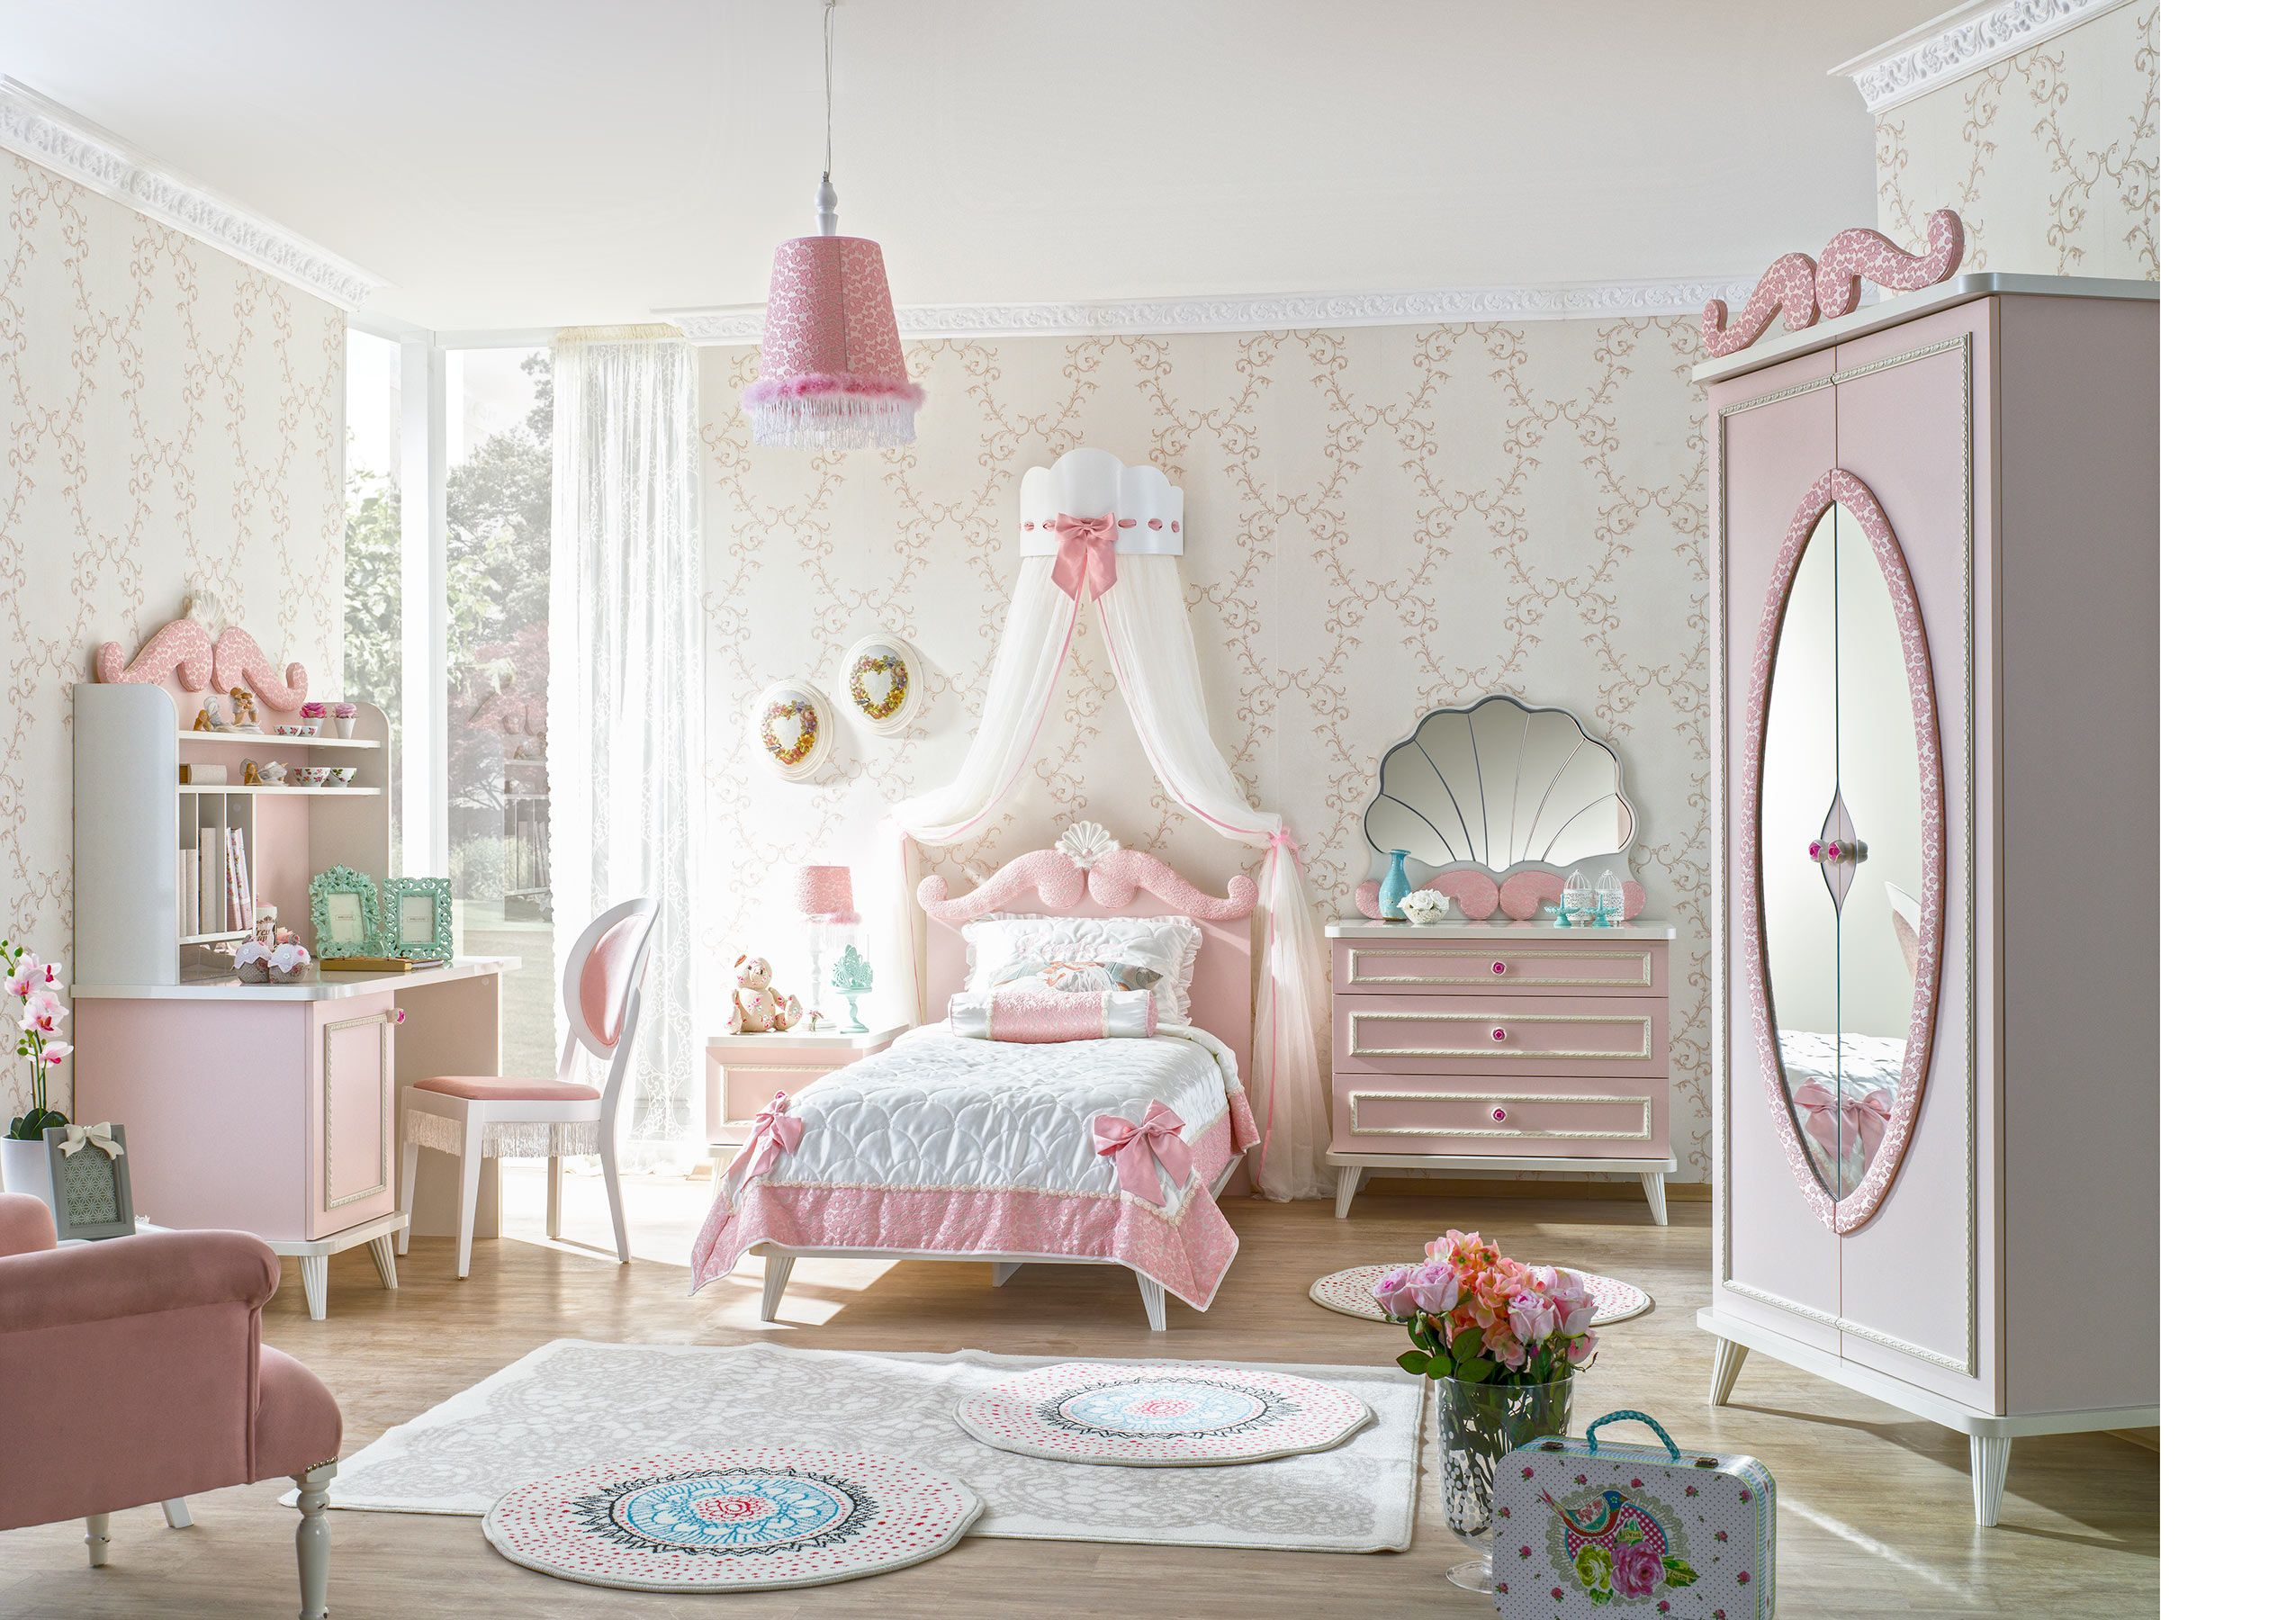 kinderzimmer m dchenzimmer rosa prinzessin fein. Black Bedroom Furniture Sets. Home Design Ideas